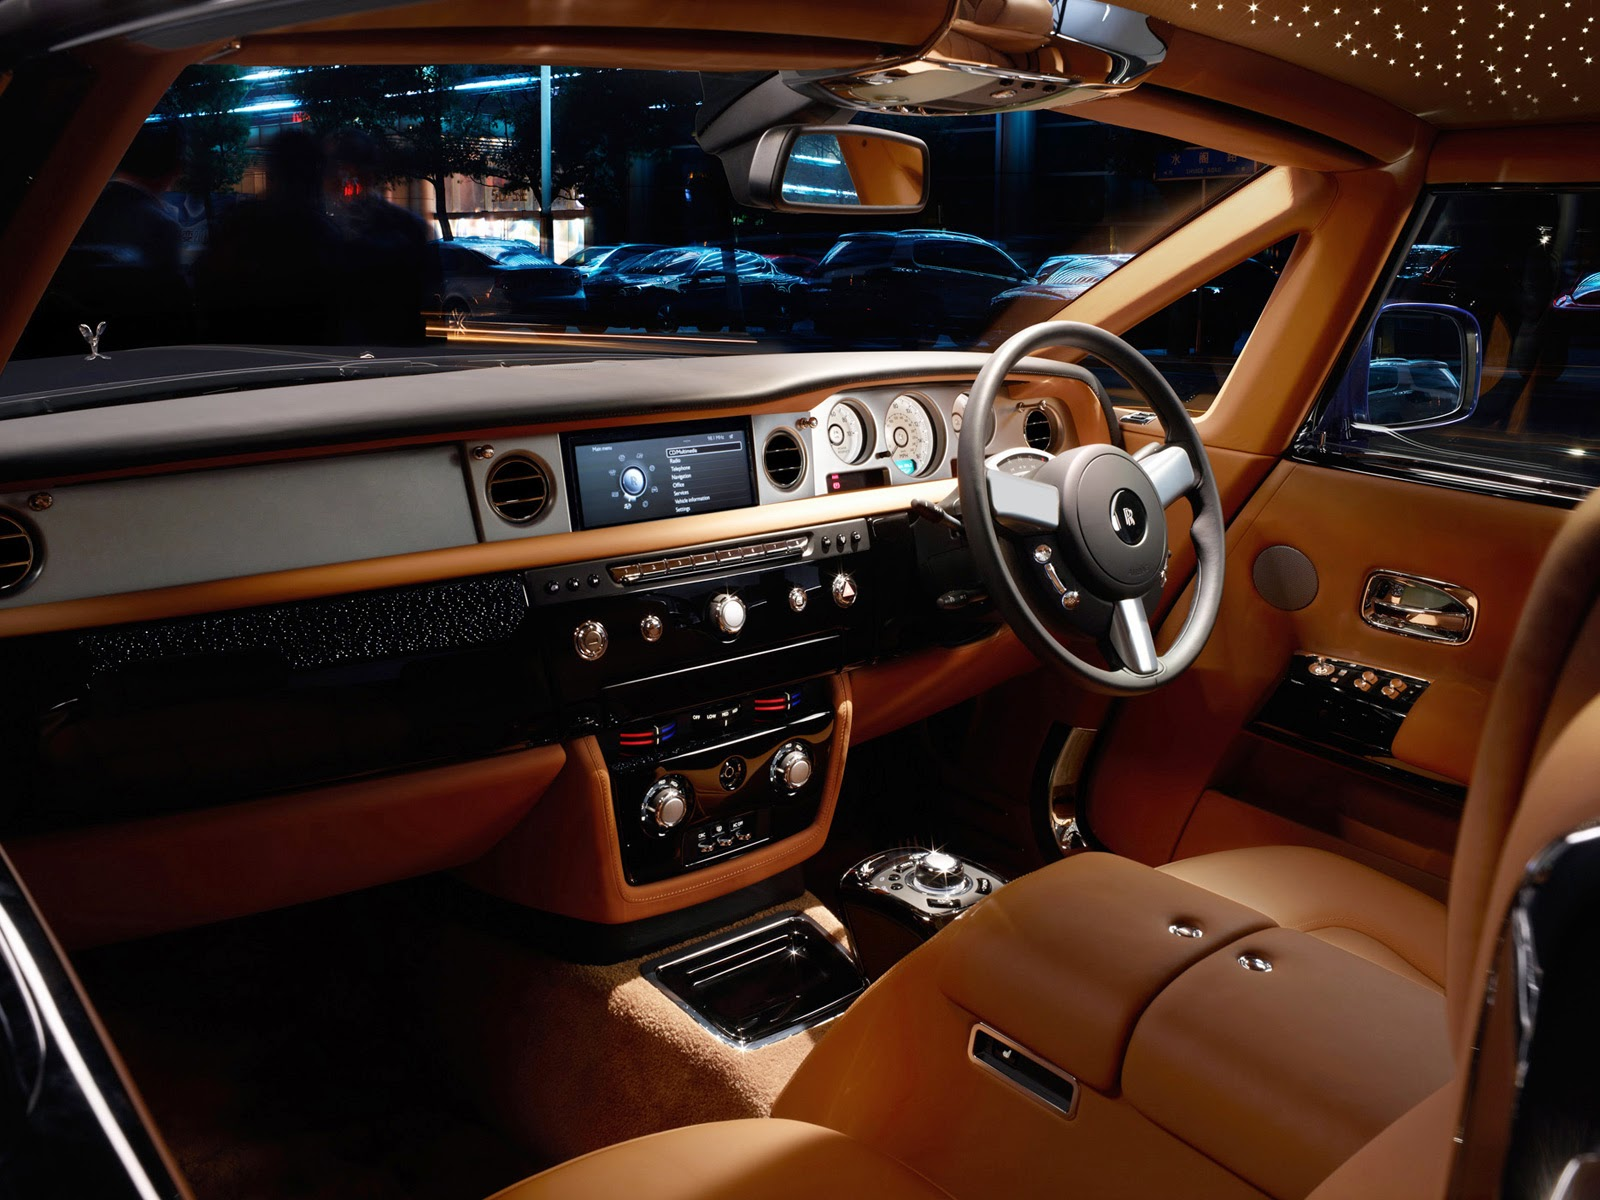 Rolls Royce Phantom Interior 2017